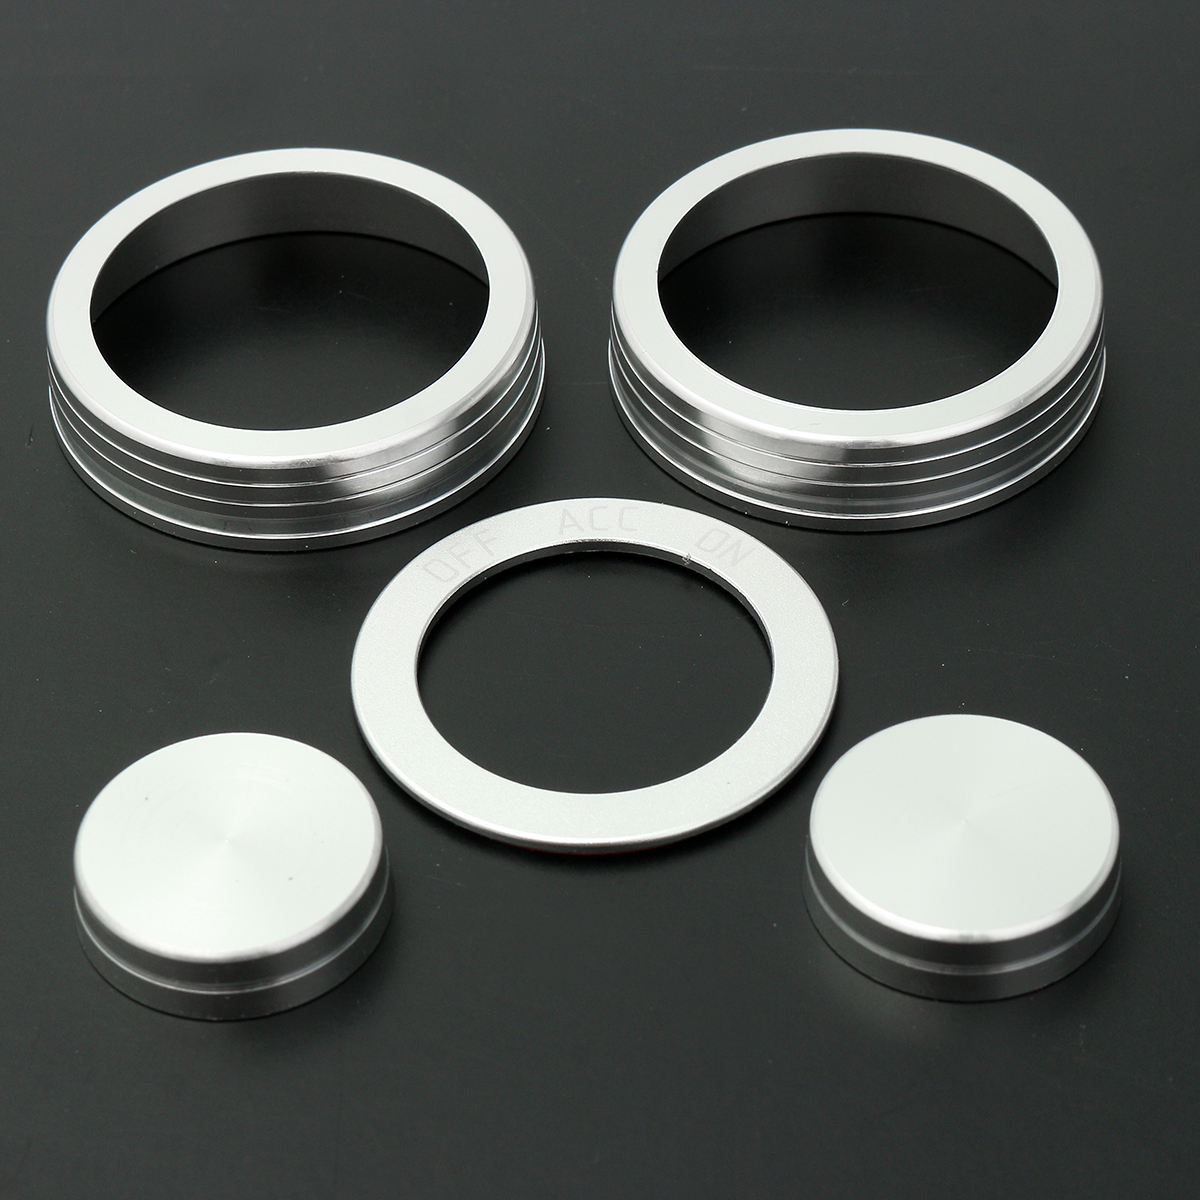 5 Pcs Car Air Condition Button Ignition Ring Cover Frame Trim For Tucson 2016 2017